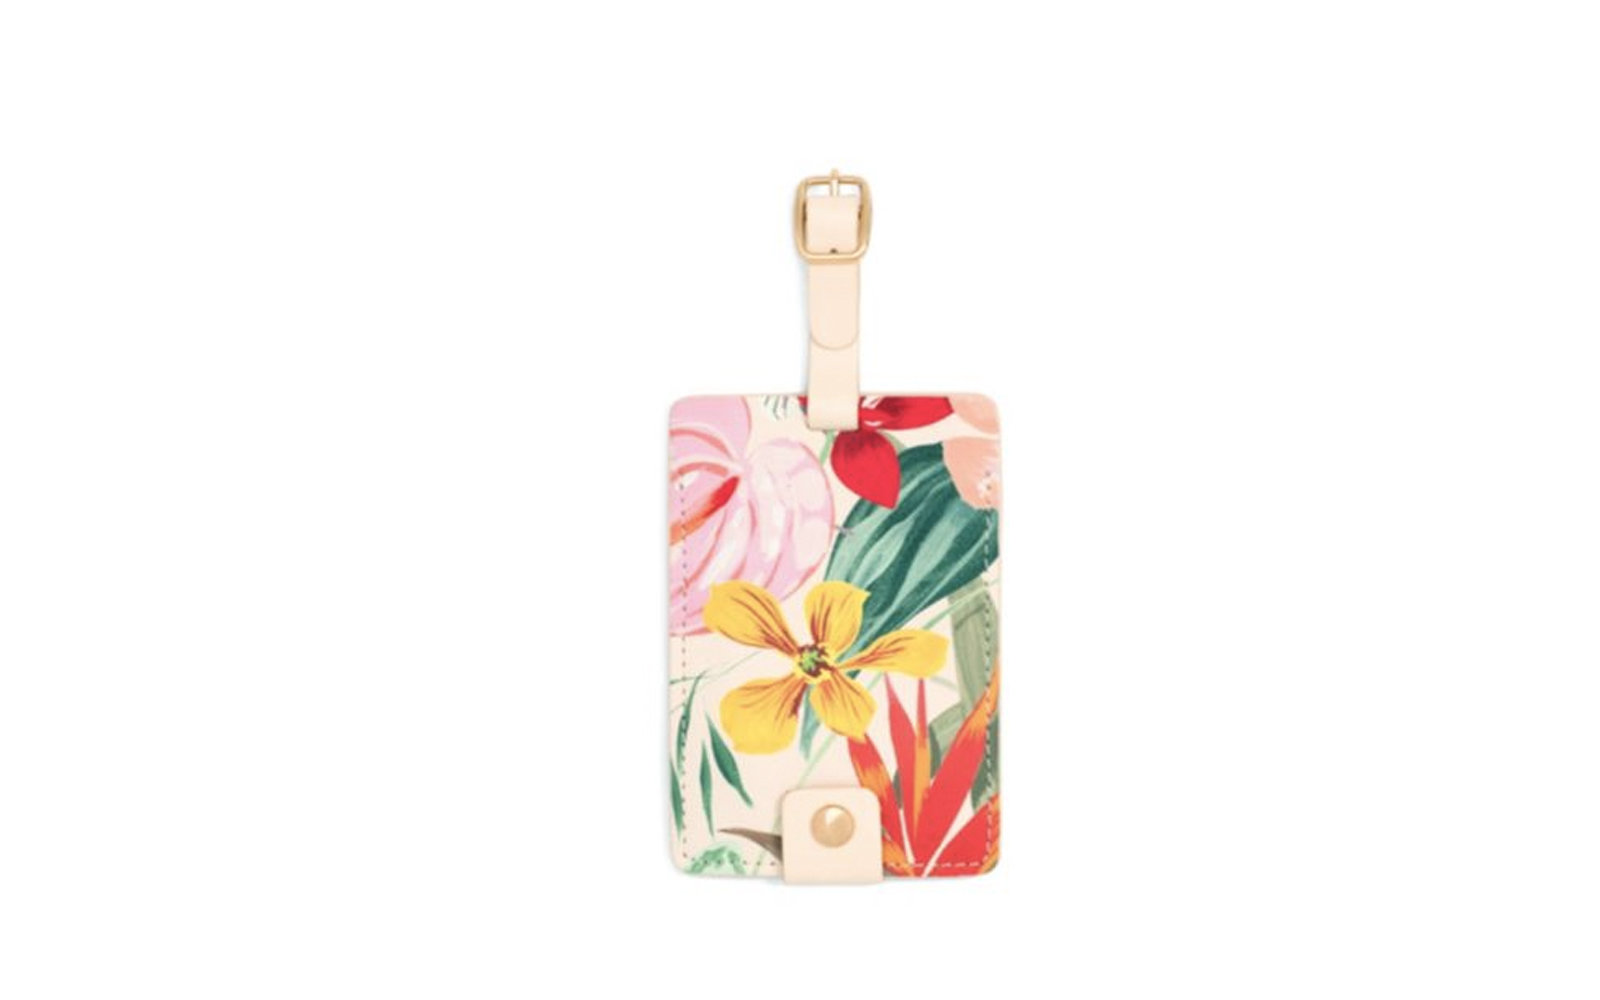 Best Travel Accessories From the Saks Fifth Avenue Friends and Family Sale